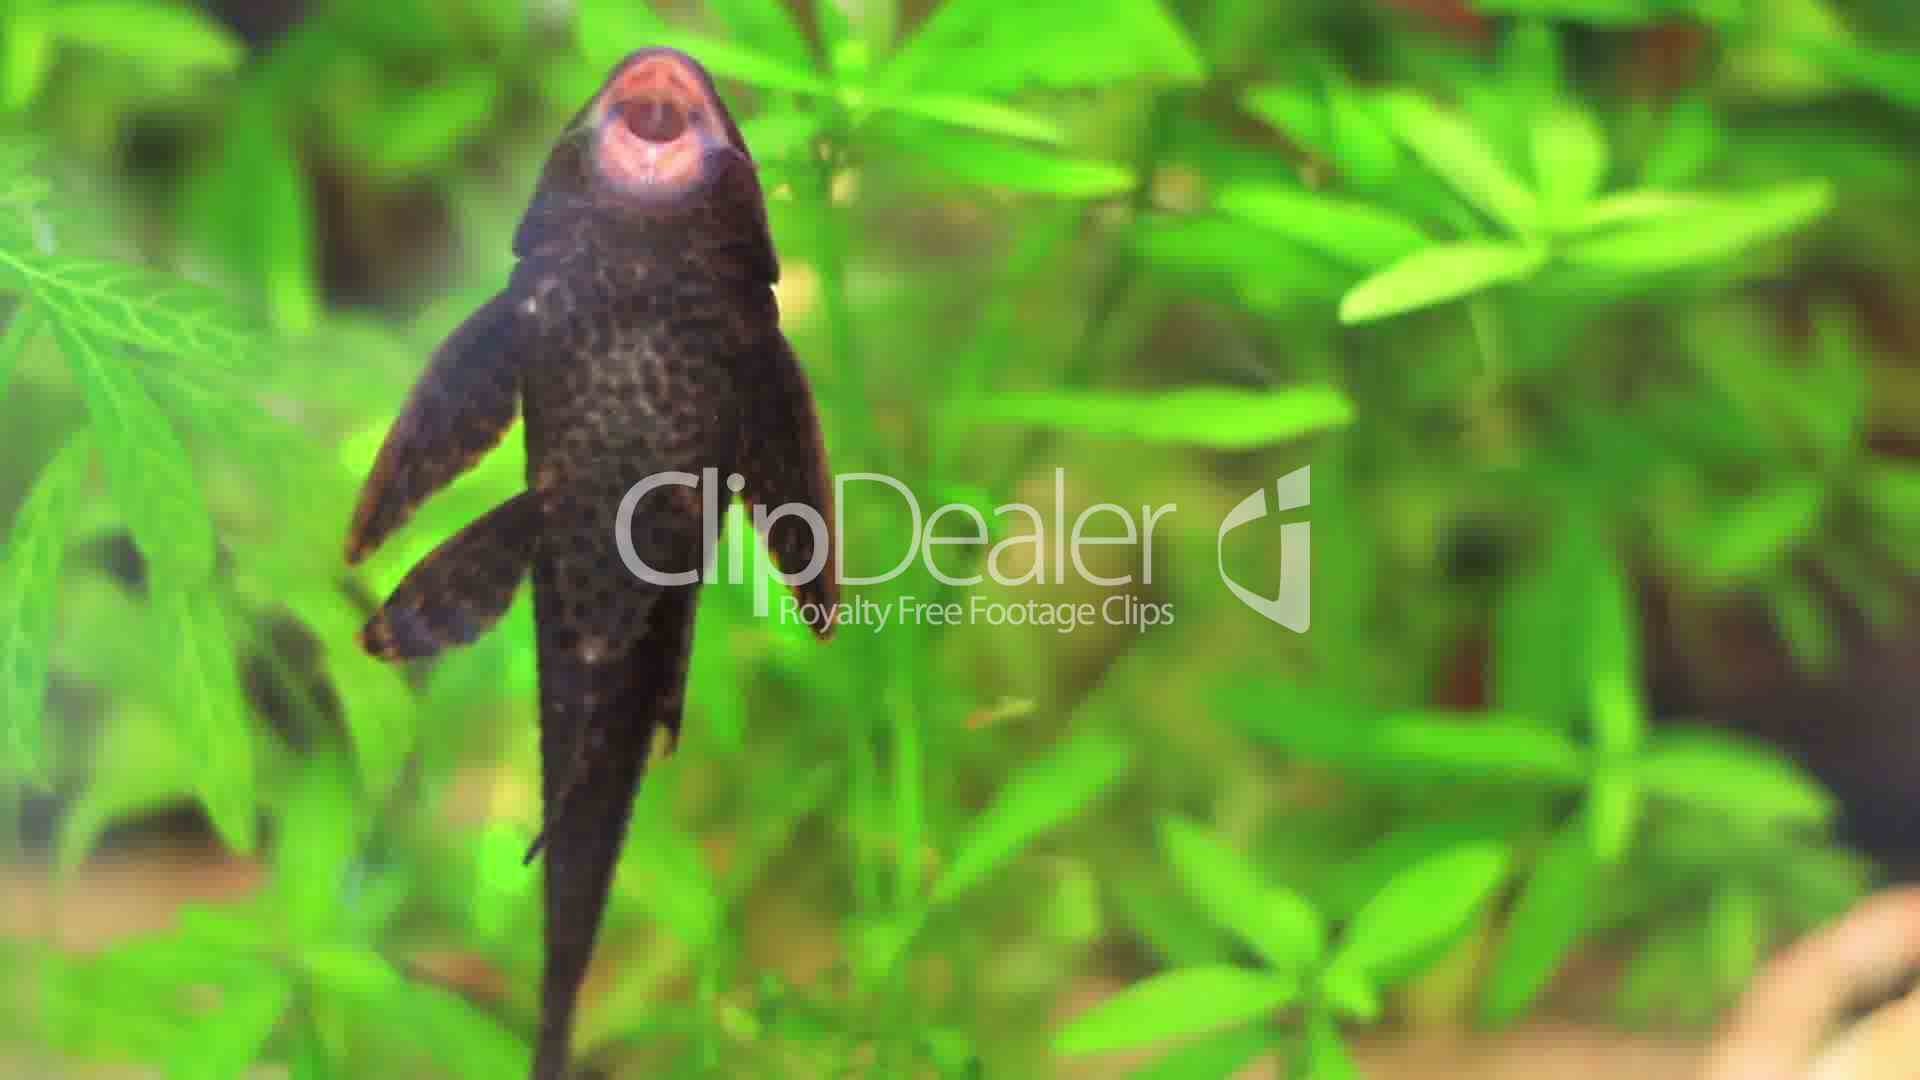 Aquarium Fish Plecostomus Royalty Free Video And Stock Footage